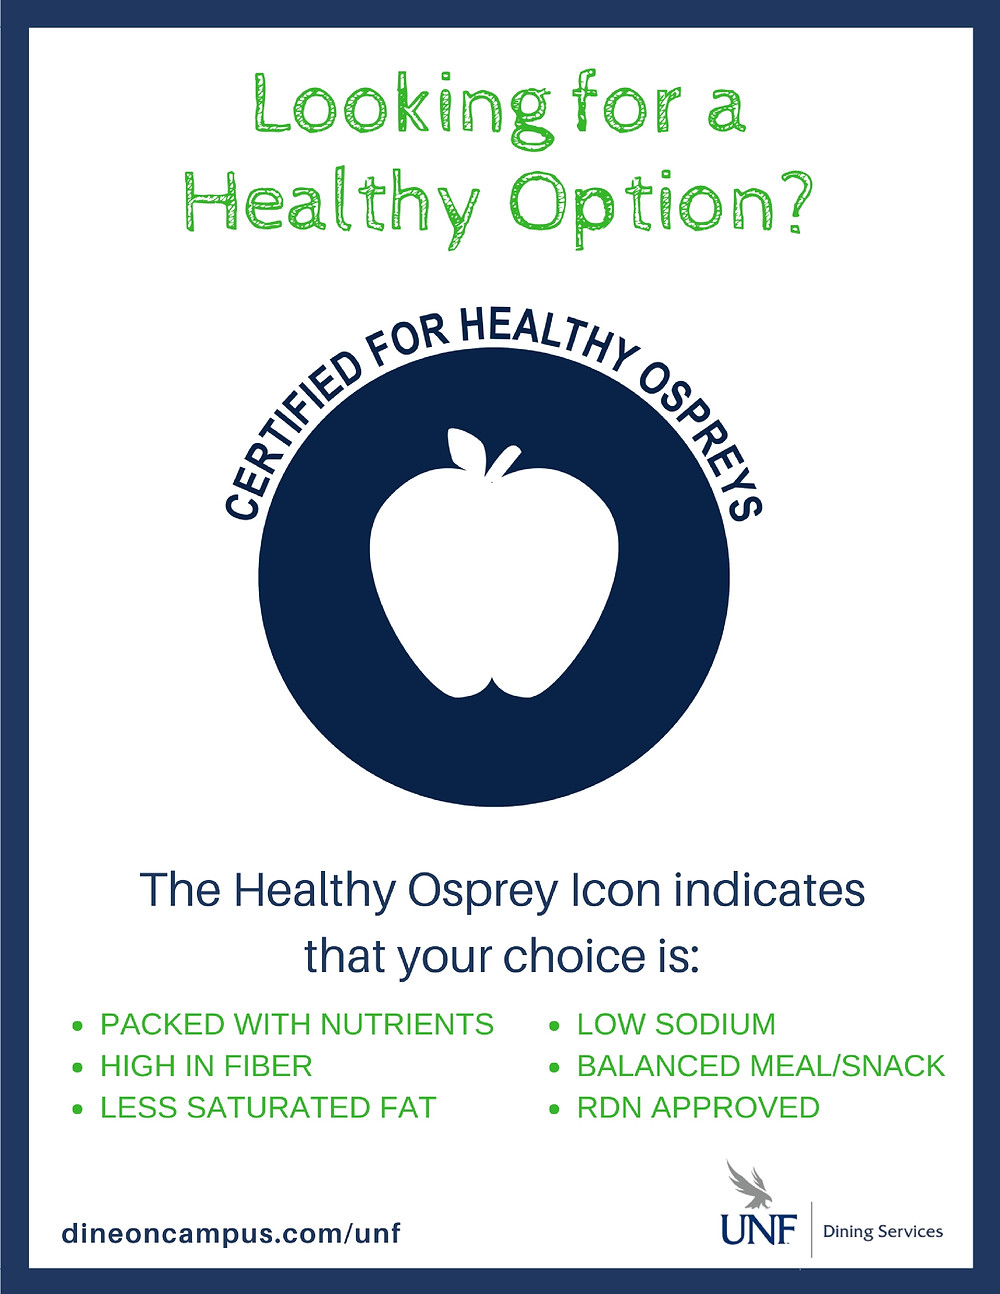 The Healthy Osprey Icon.